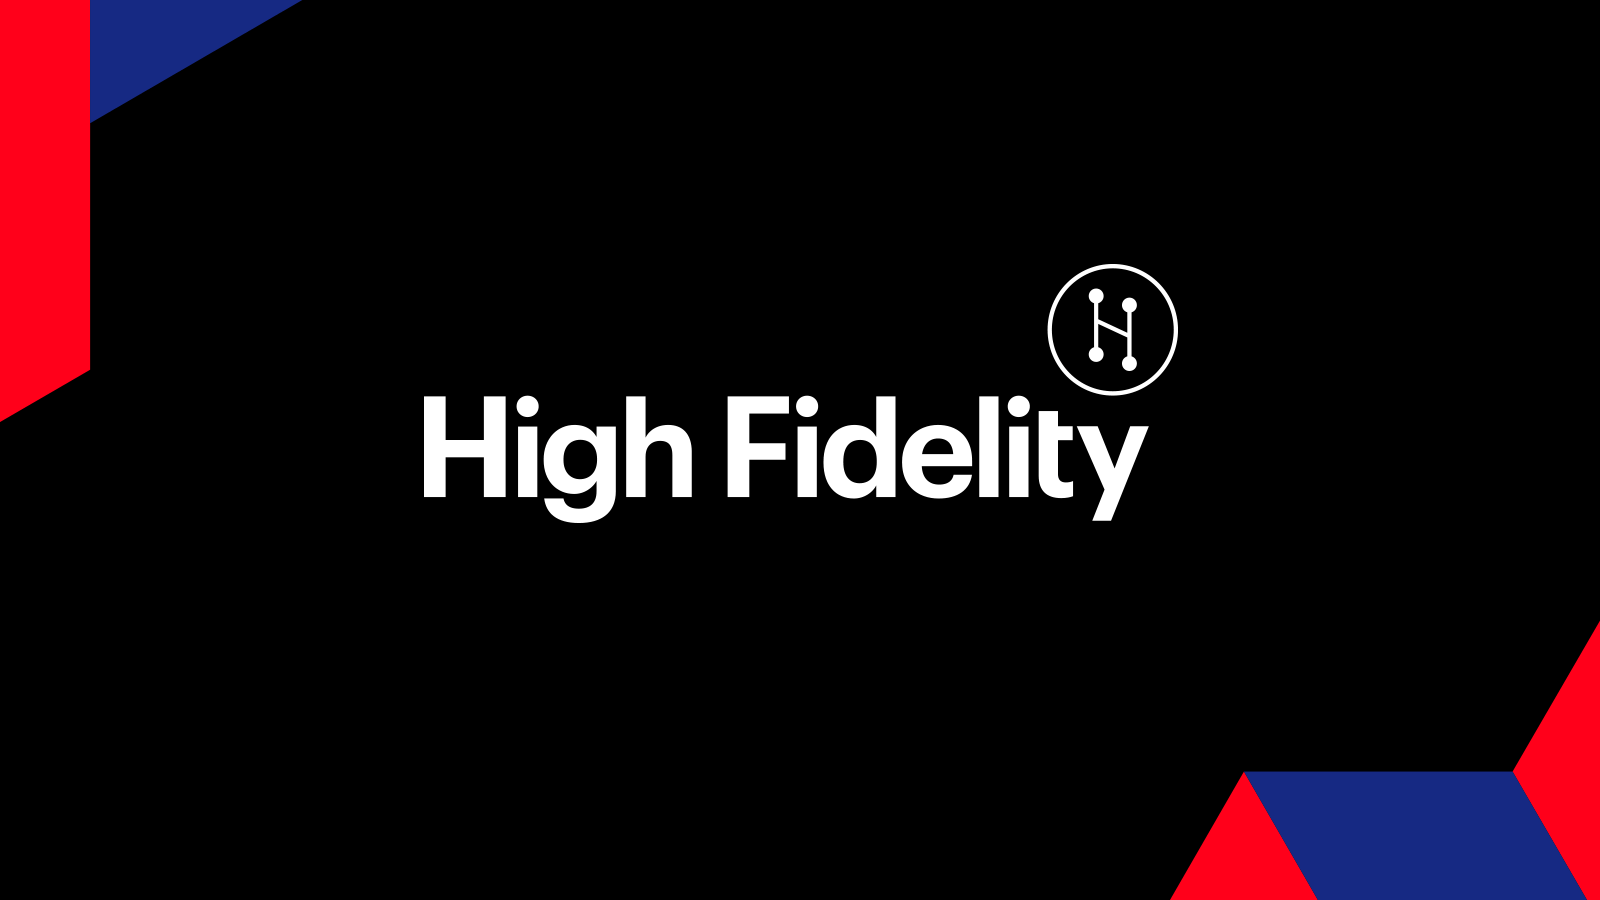 High Fidelity System Architecture